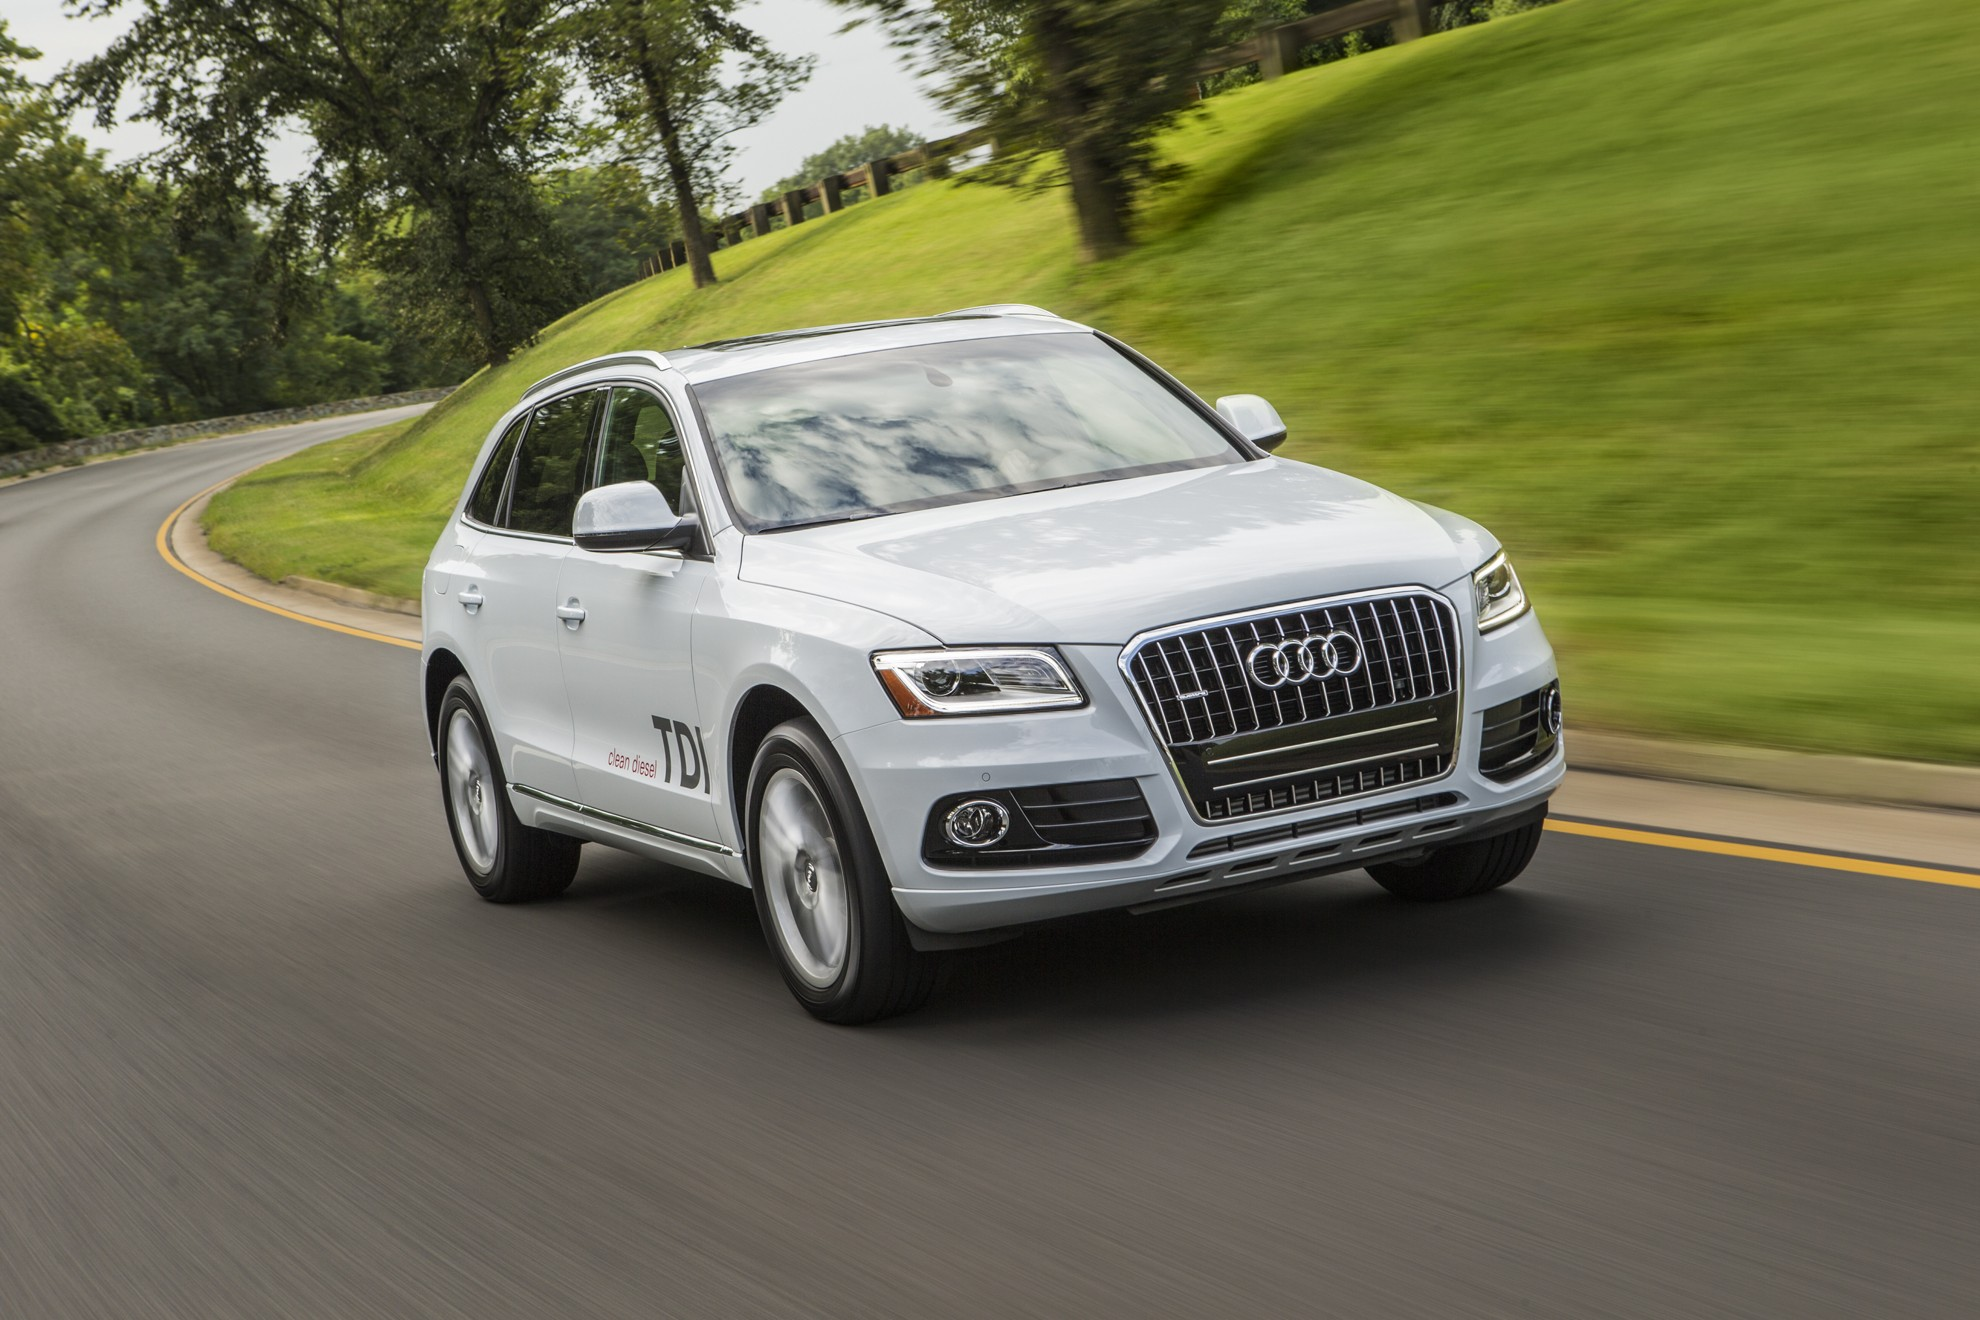 AUDI Q5 NAMED BEST LUXURY COMPACT SUV FOR FAMILIES BY U.S. NEWS & WORLD REPORT